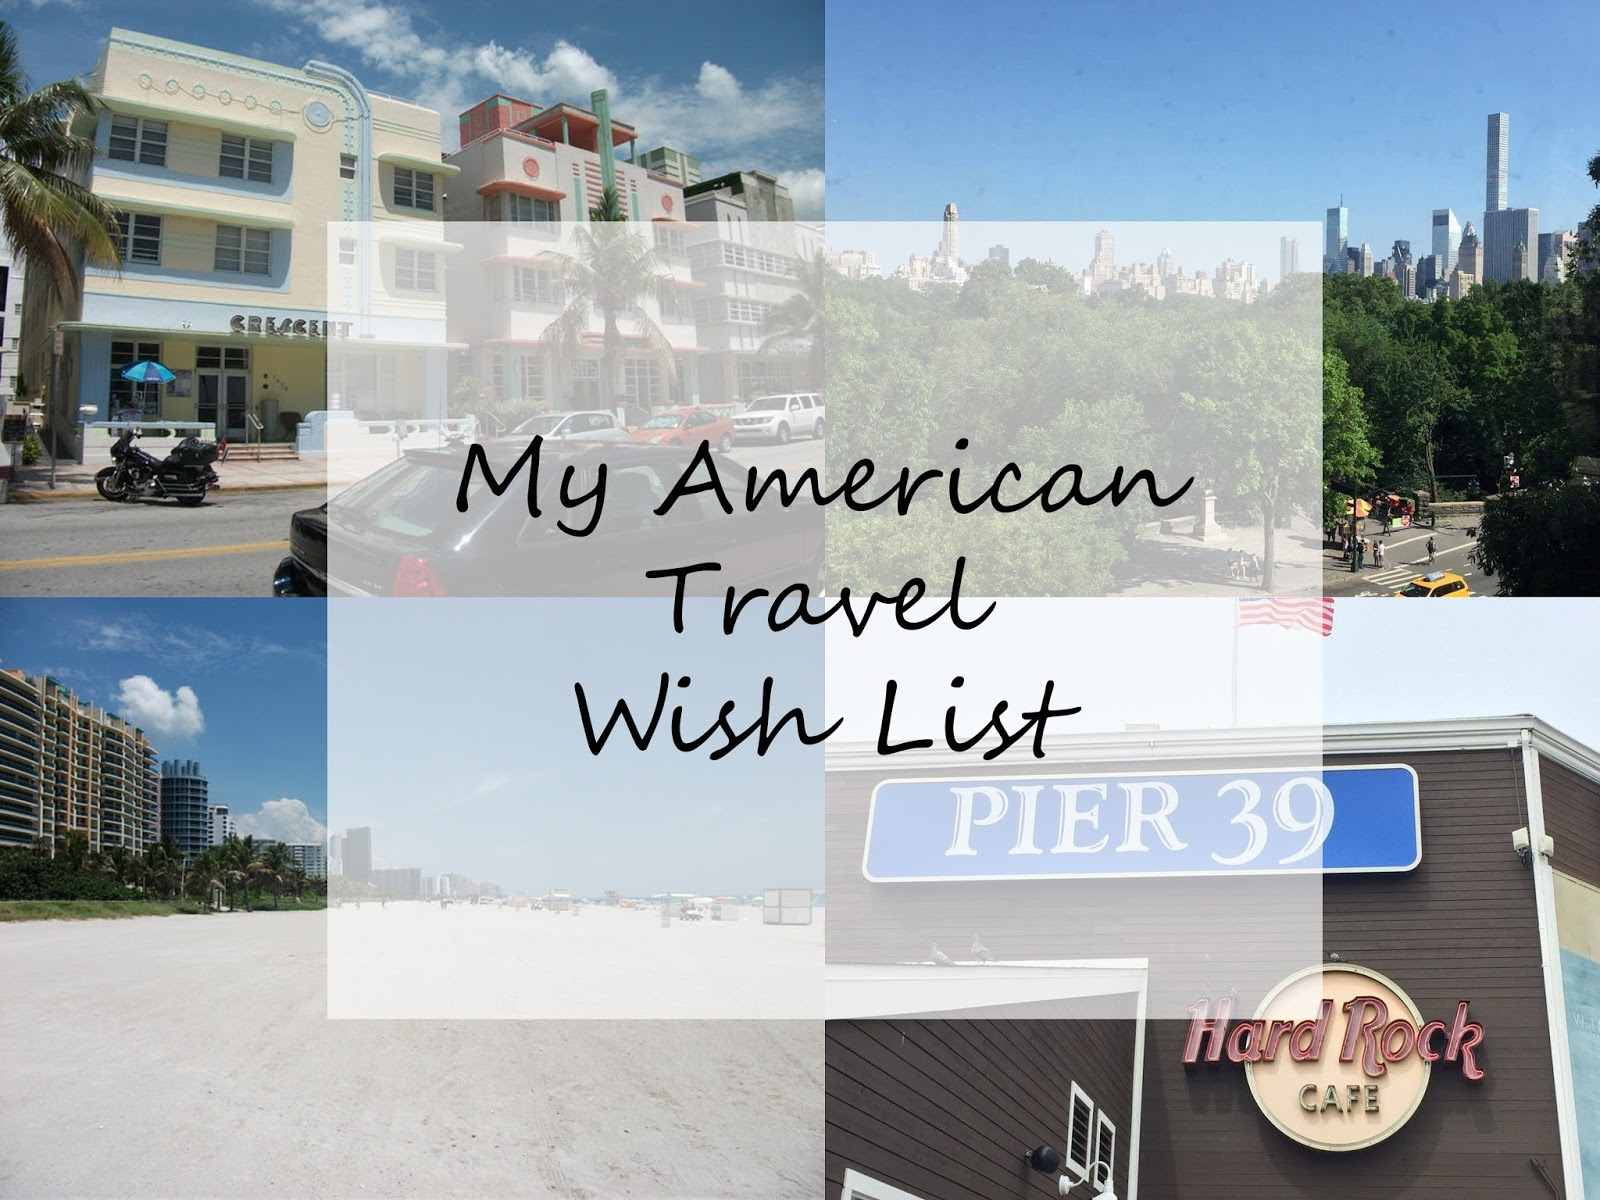 My American Travel Wish List